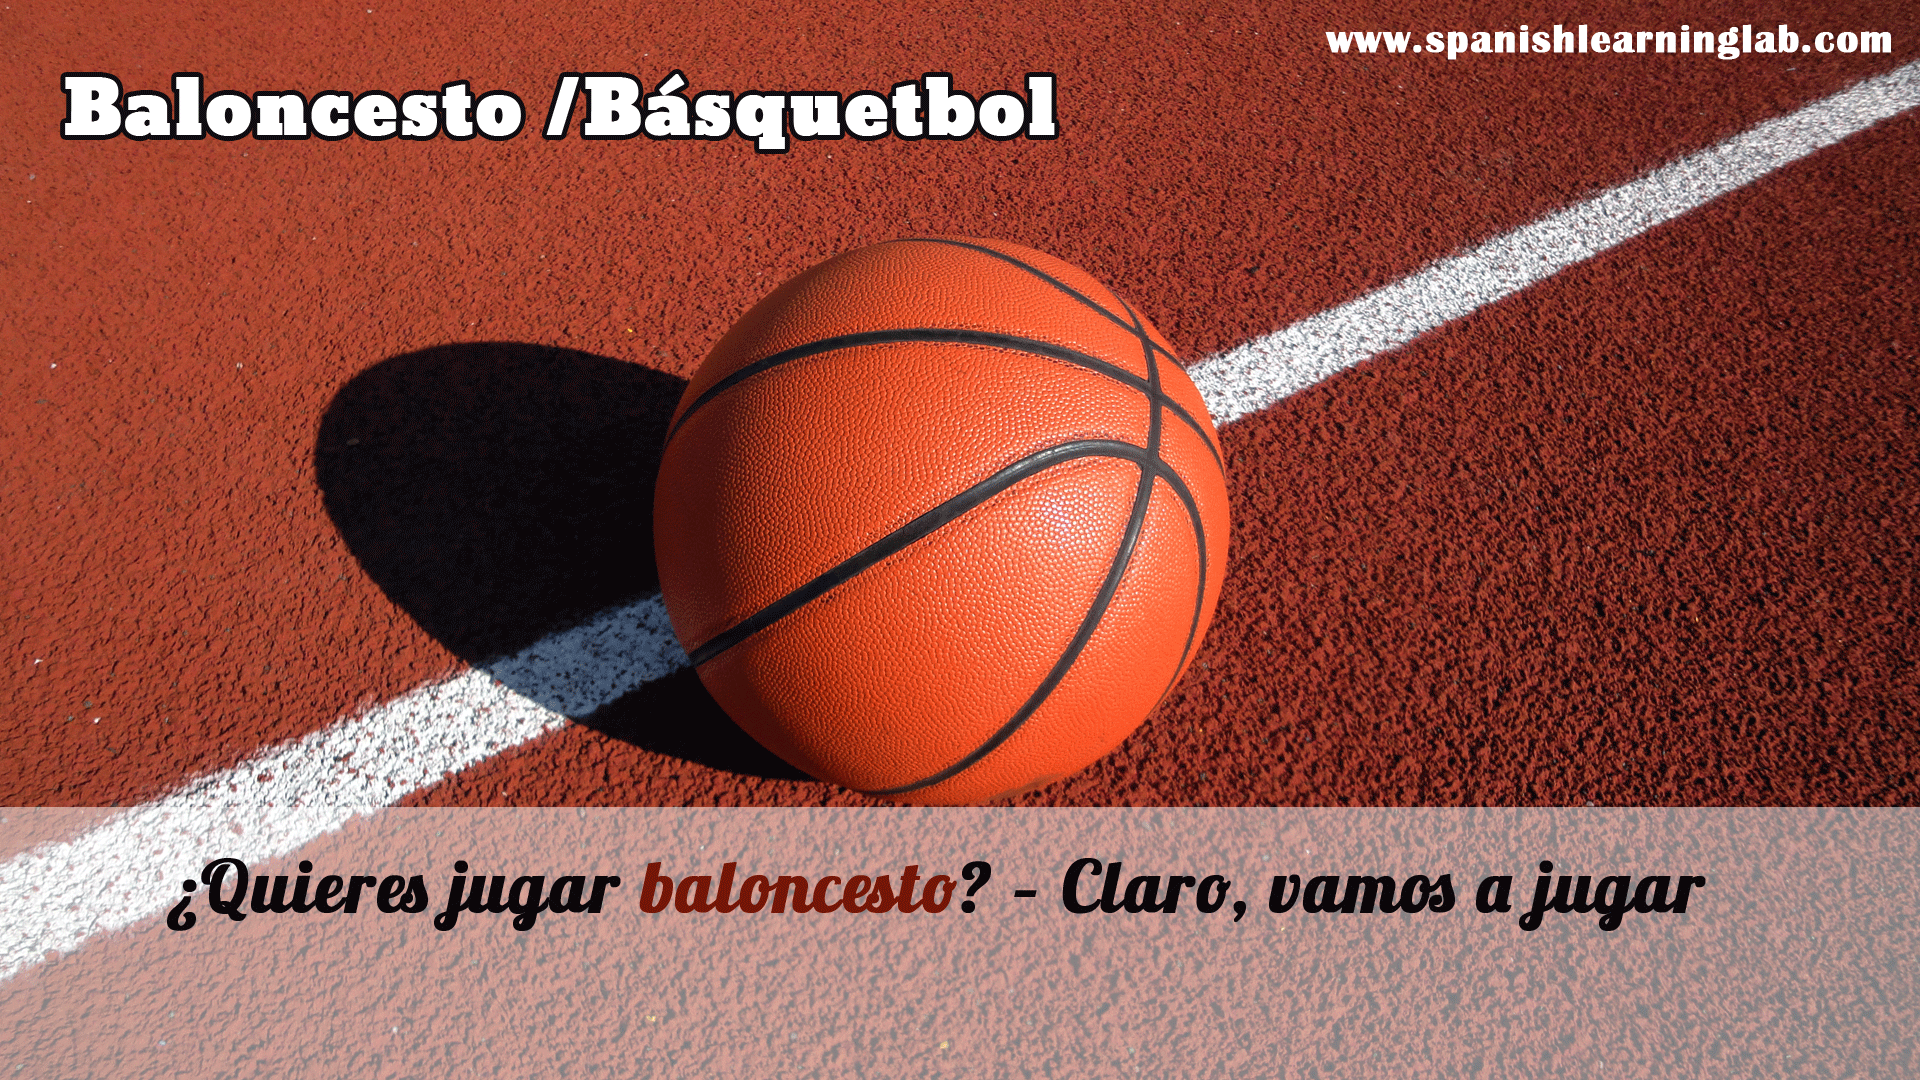 Do you want to play basketball Sure lets play Quieres jugar